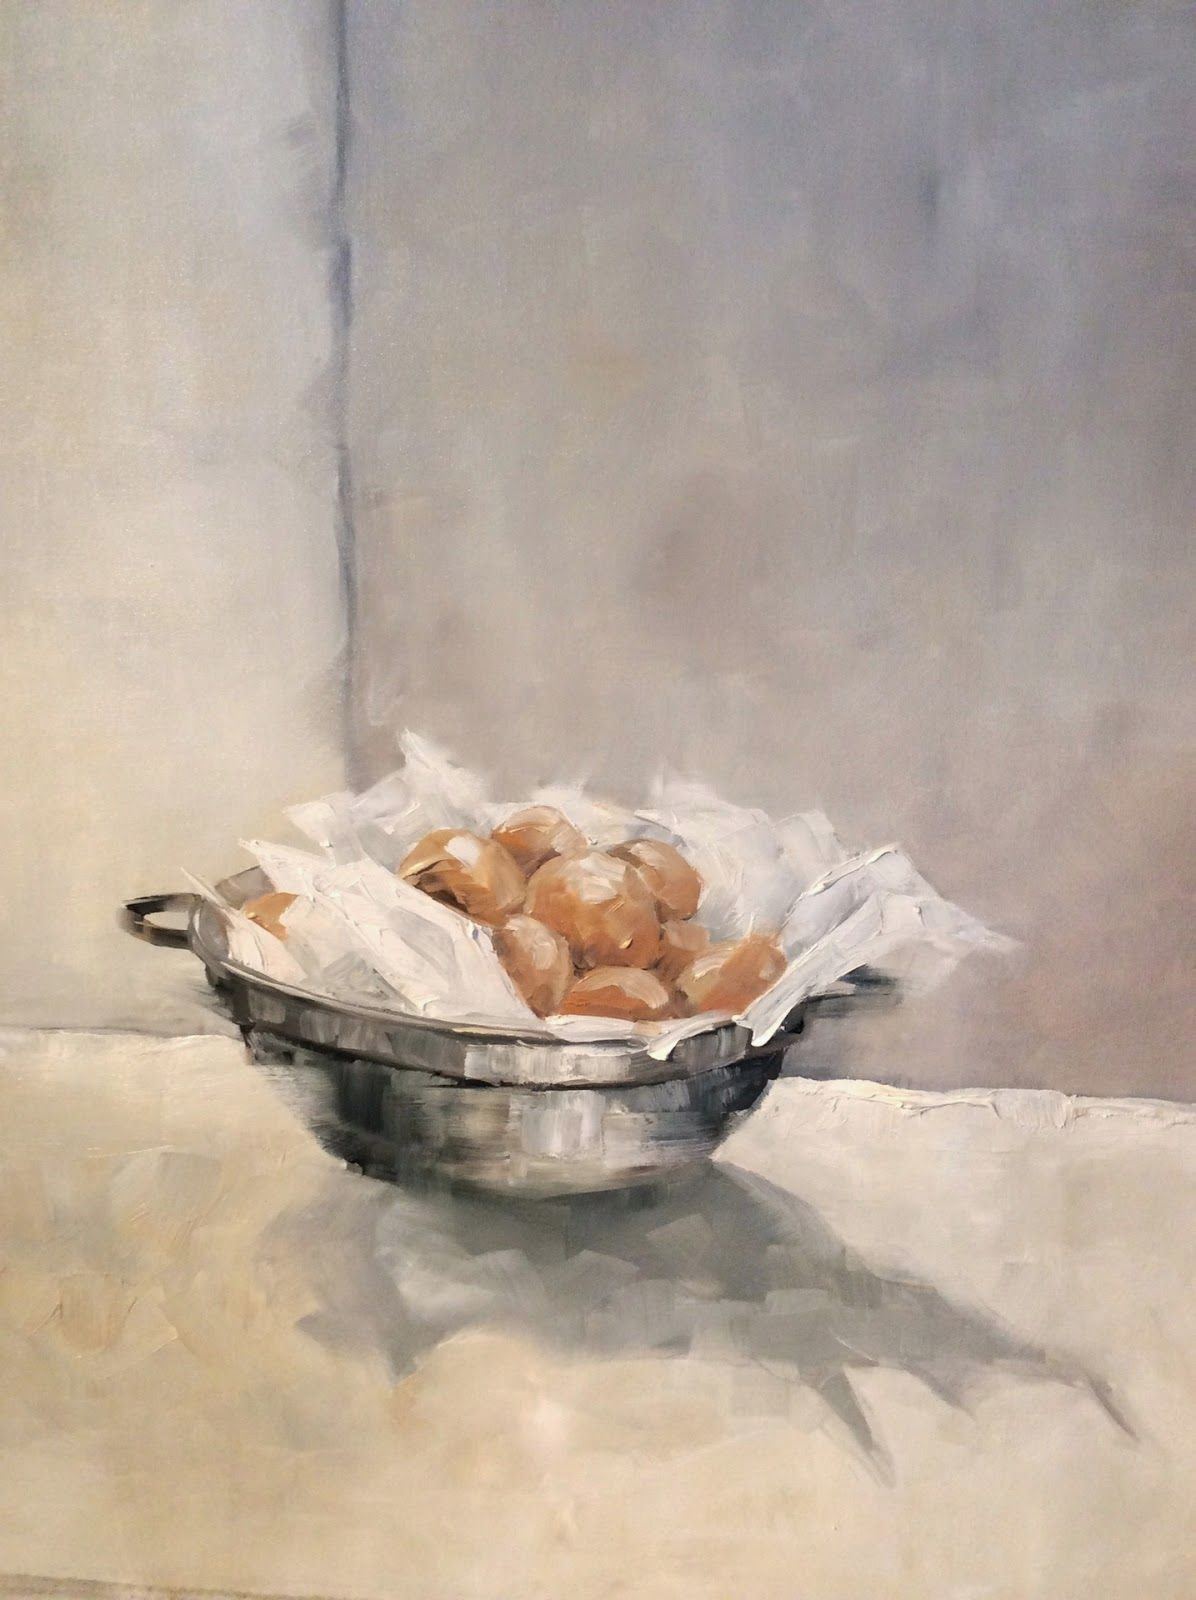 Watercolor artists in texas - M Allison Artist Paintings For Sale Posted Daily By Texas Artist M Allison Original Oil Acrylic And Watercolor Artists Painting Blog